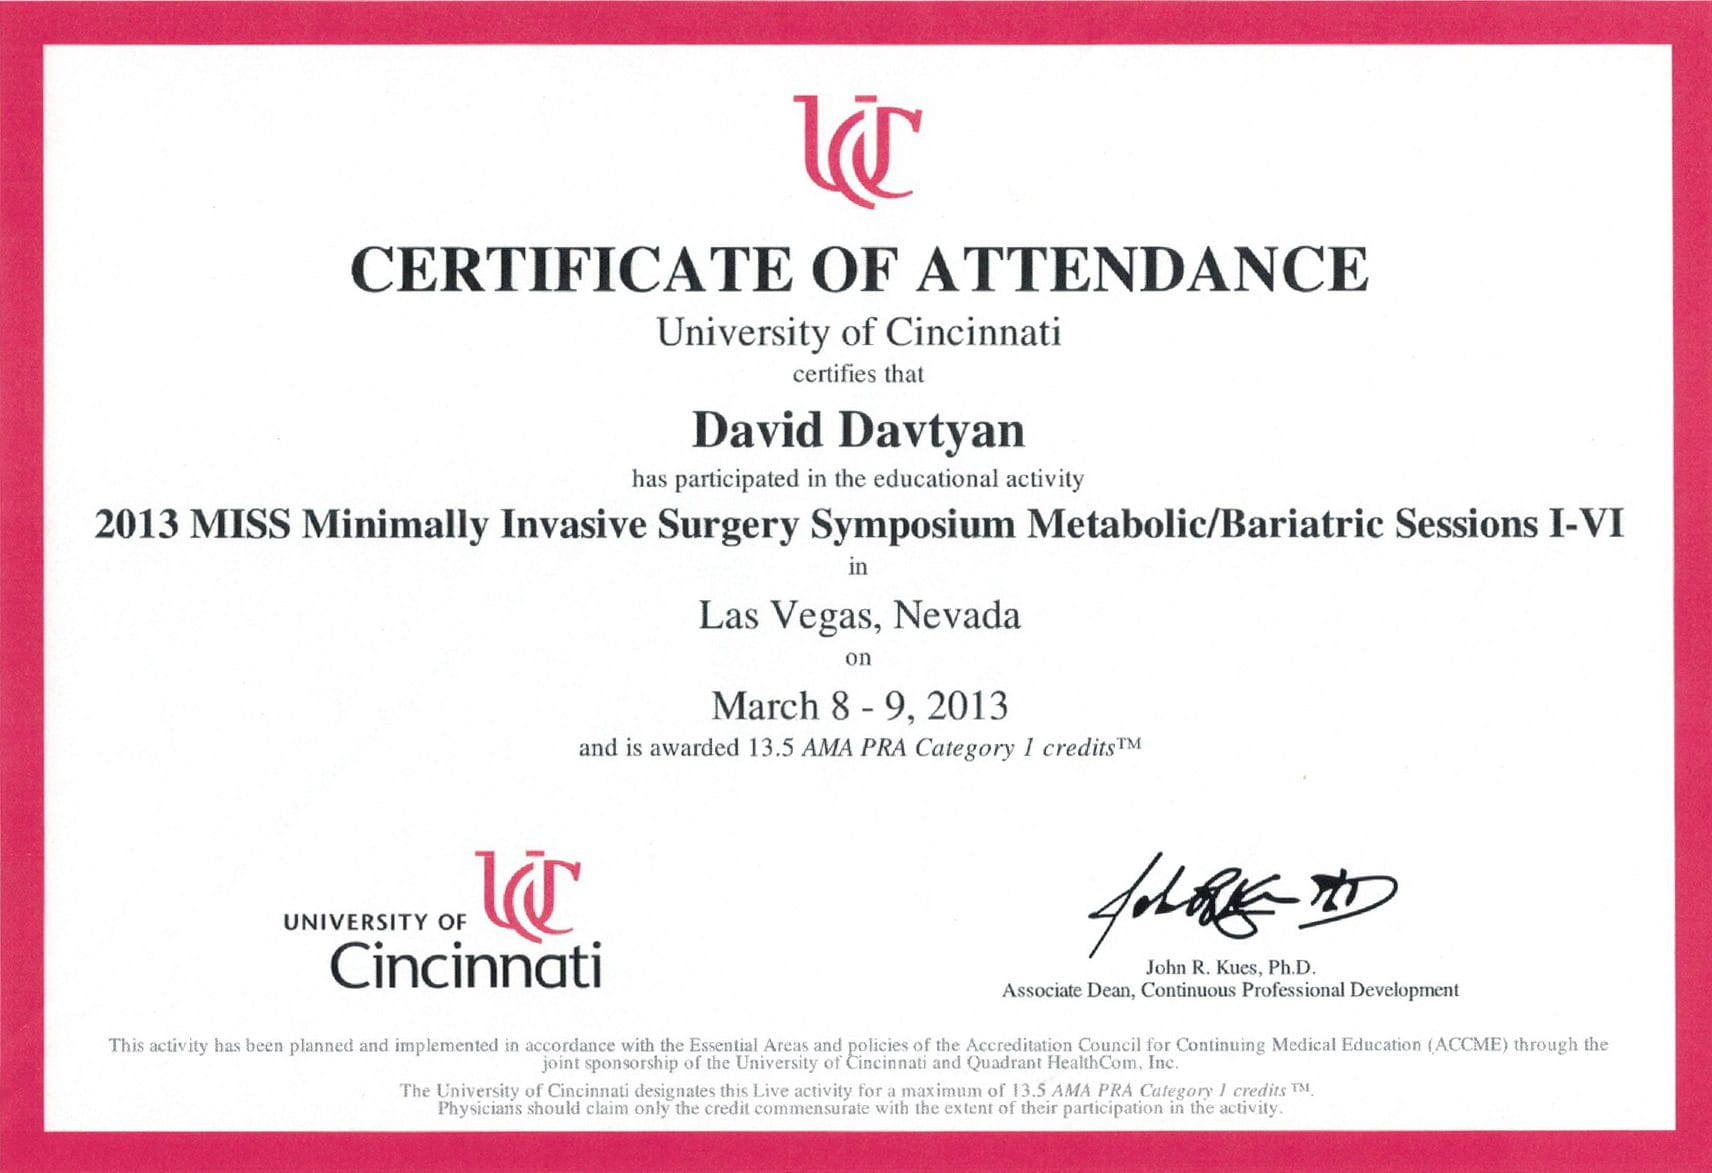 Dr. David Davtyan's University of Cincinnati 2013 MISS Minimally Invasive Surgery Symposium Metabolic Bariatric Certificate